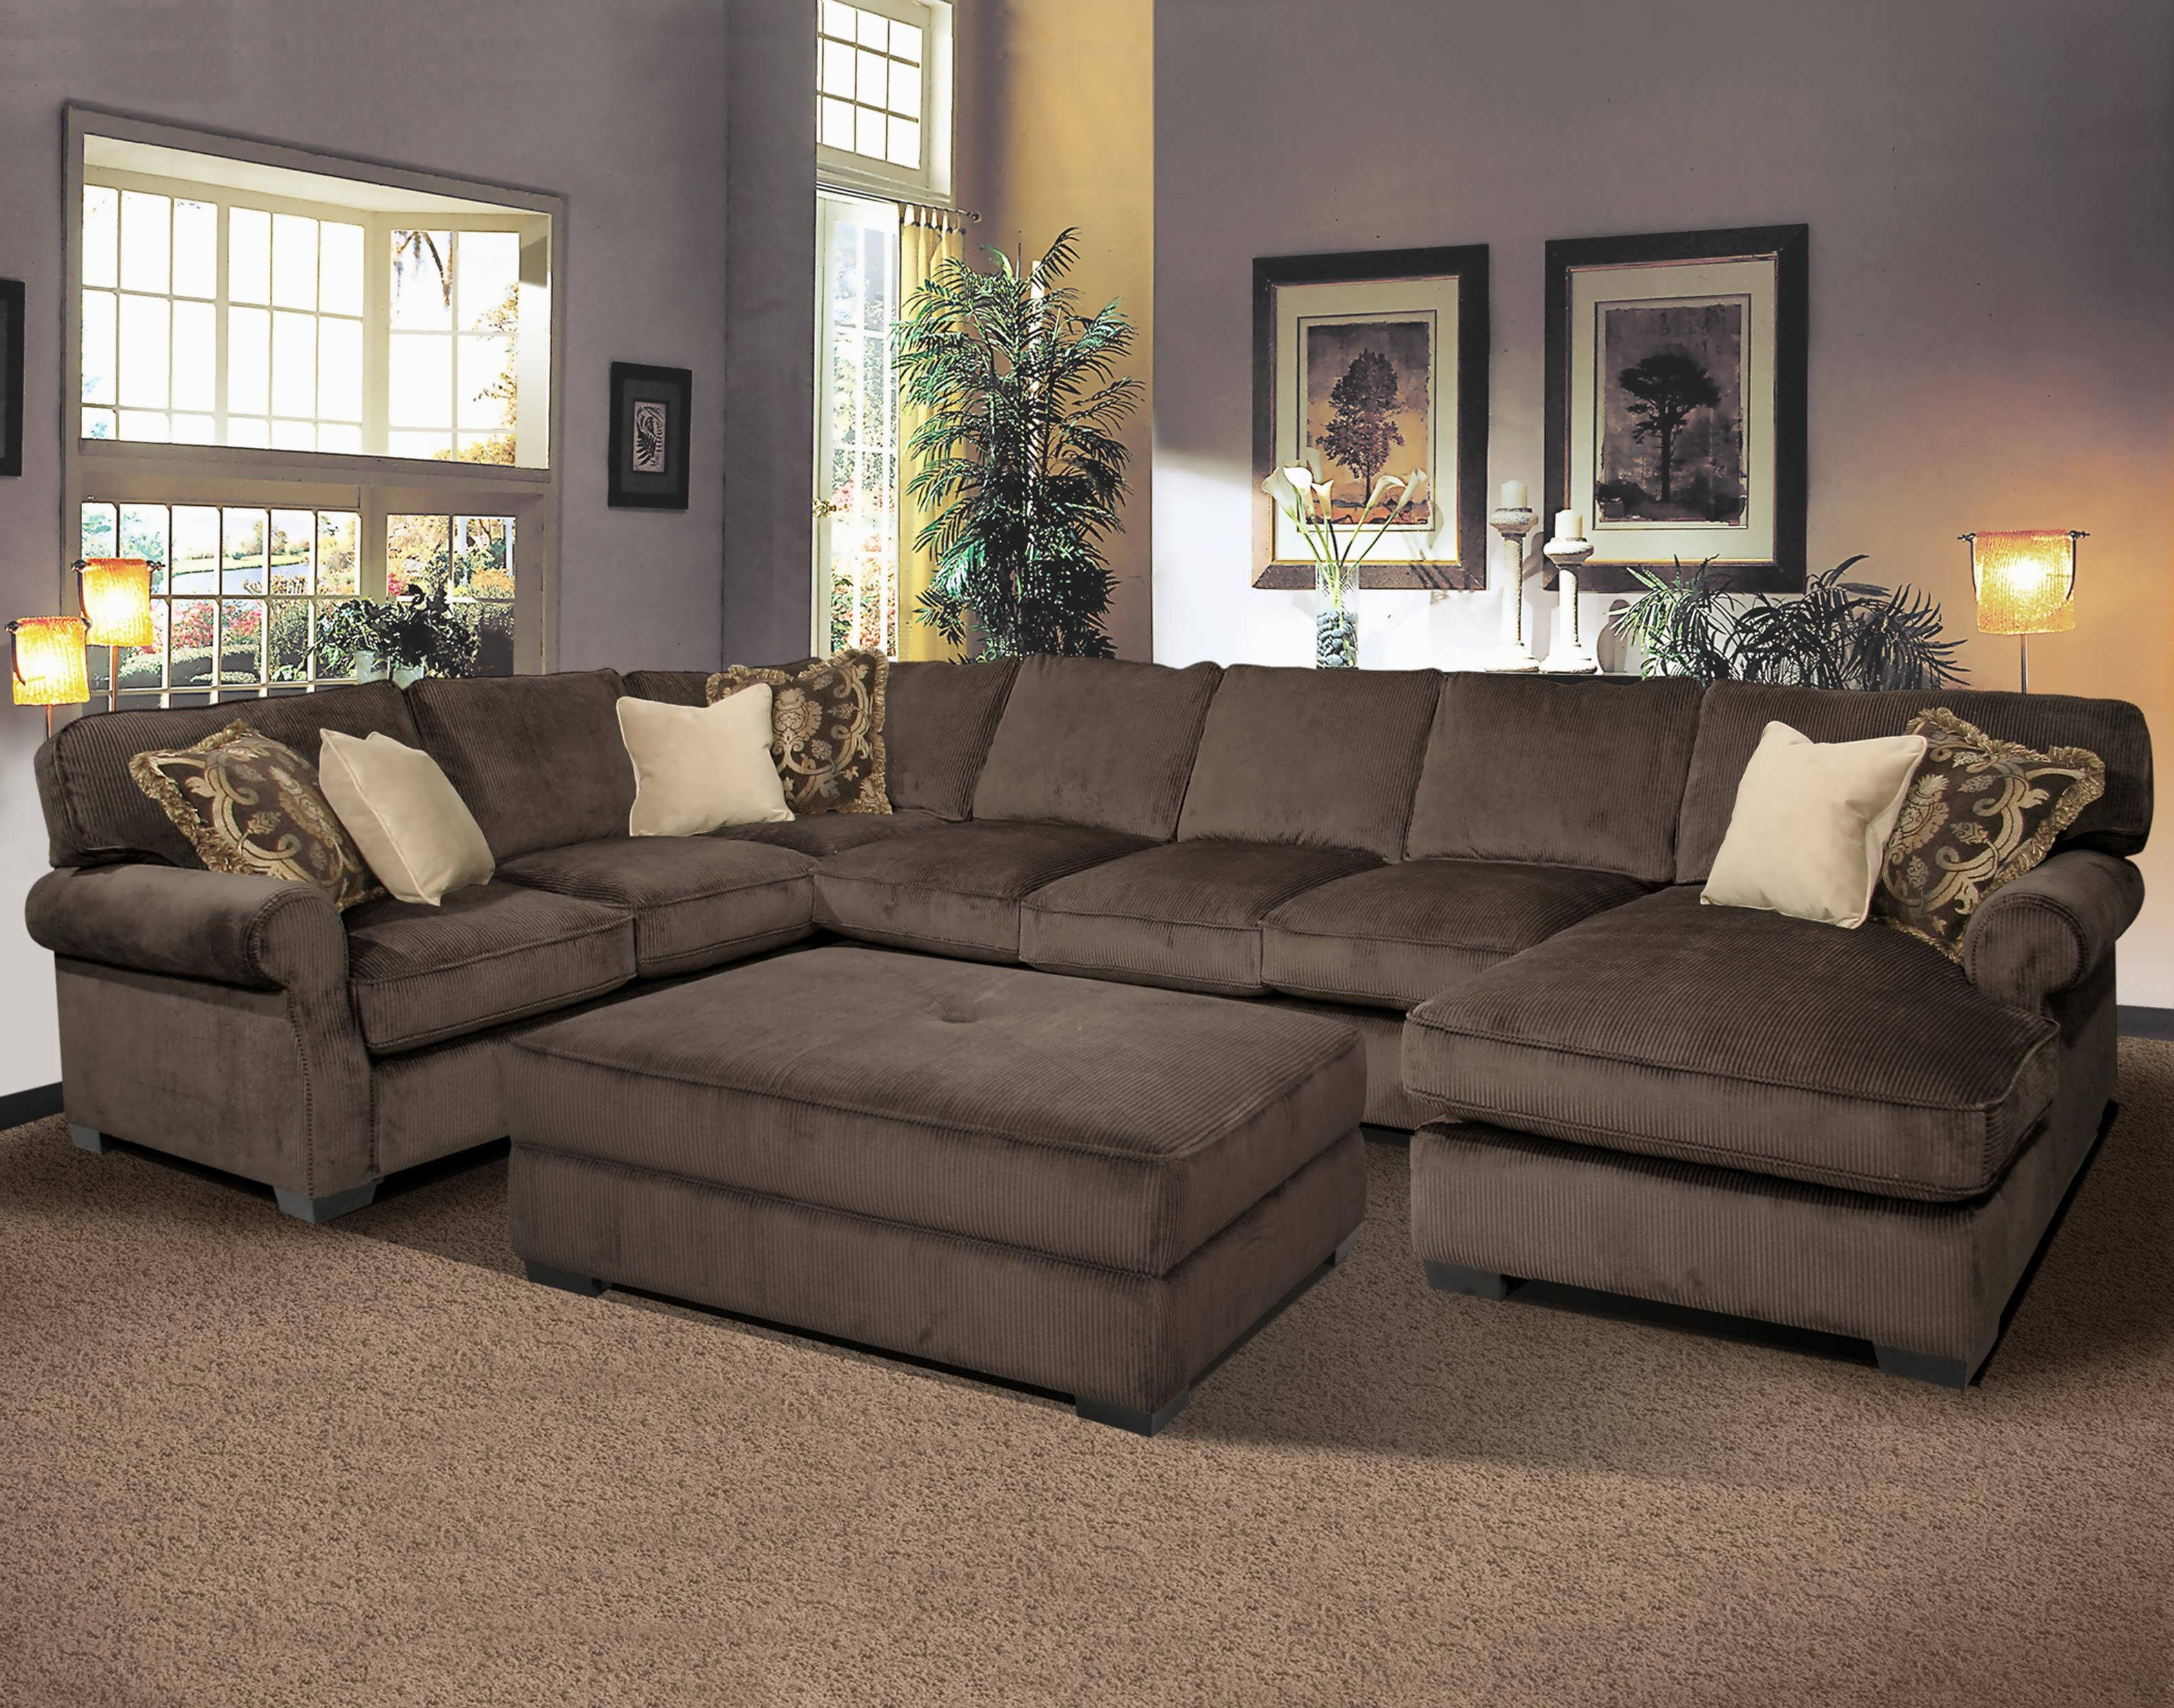 Microfiber Sectional Sofas With Chaise Regarding Most Popular Sofa : Leather Sectional Sofa Large Sectional Red Sectional Sofa (View 6 of 15)